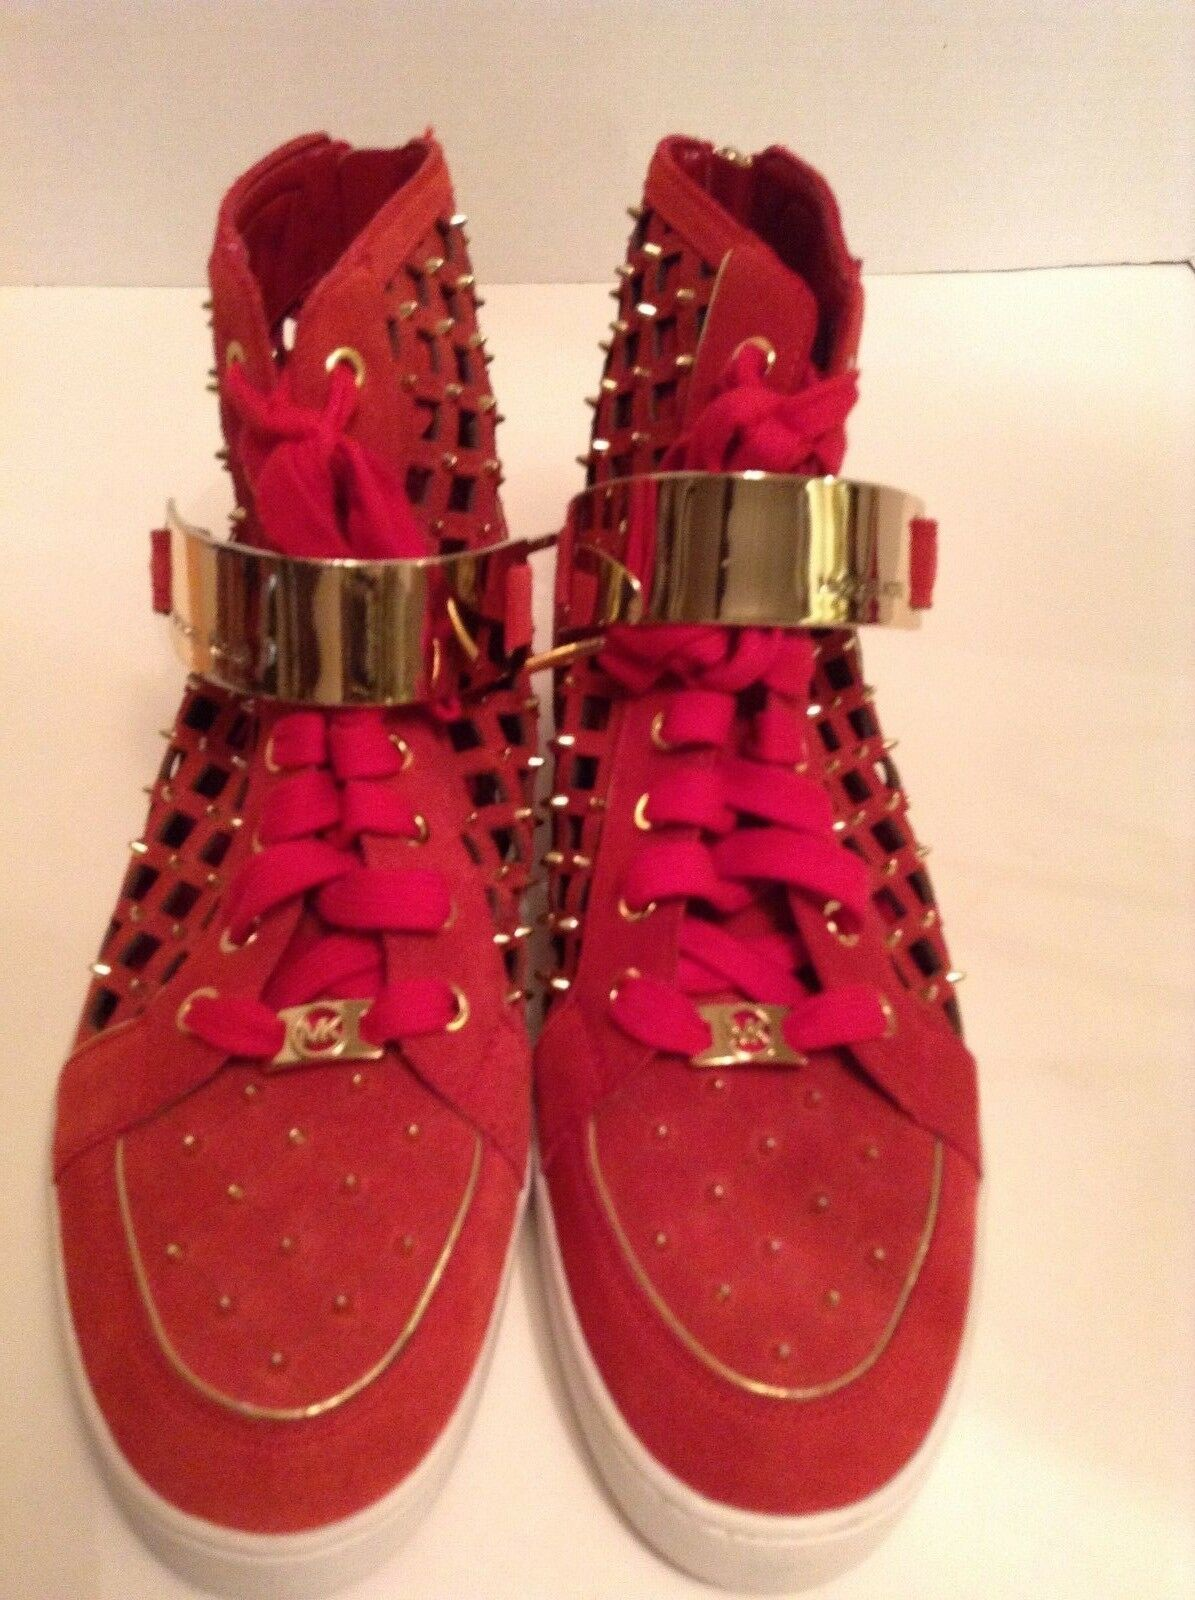 MICHAEL Kors High Top Sneakers Size 9.5 M Red Solid Flat Leather Shoe